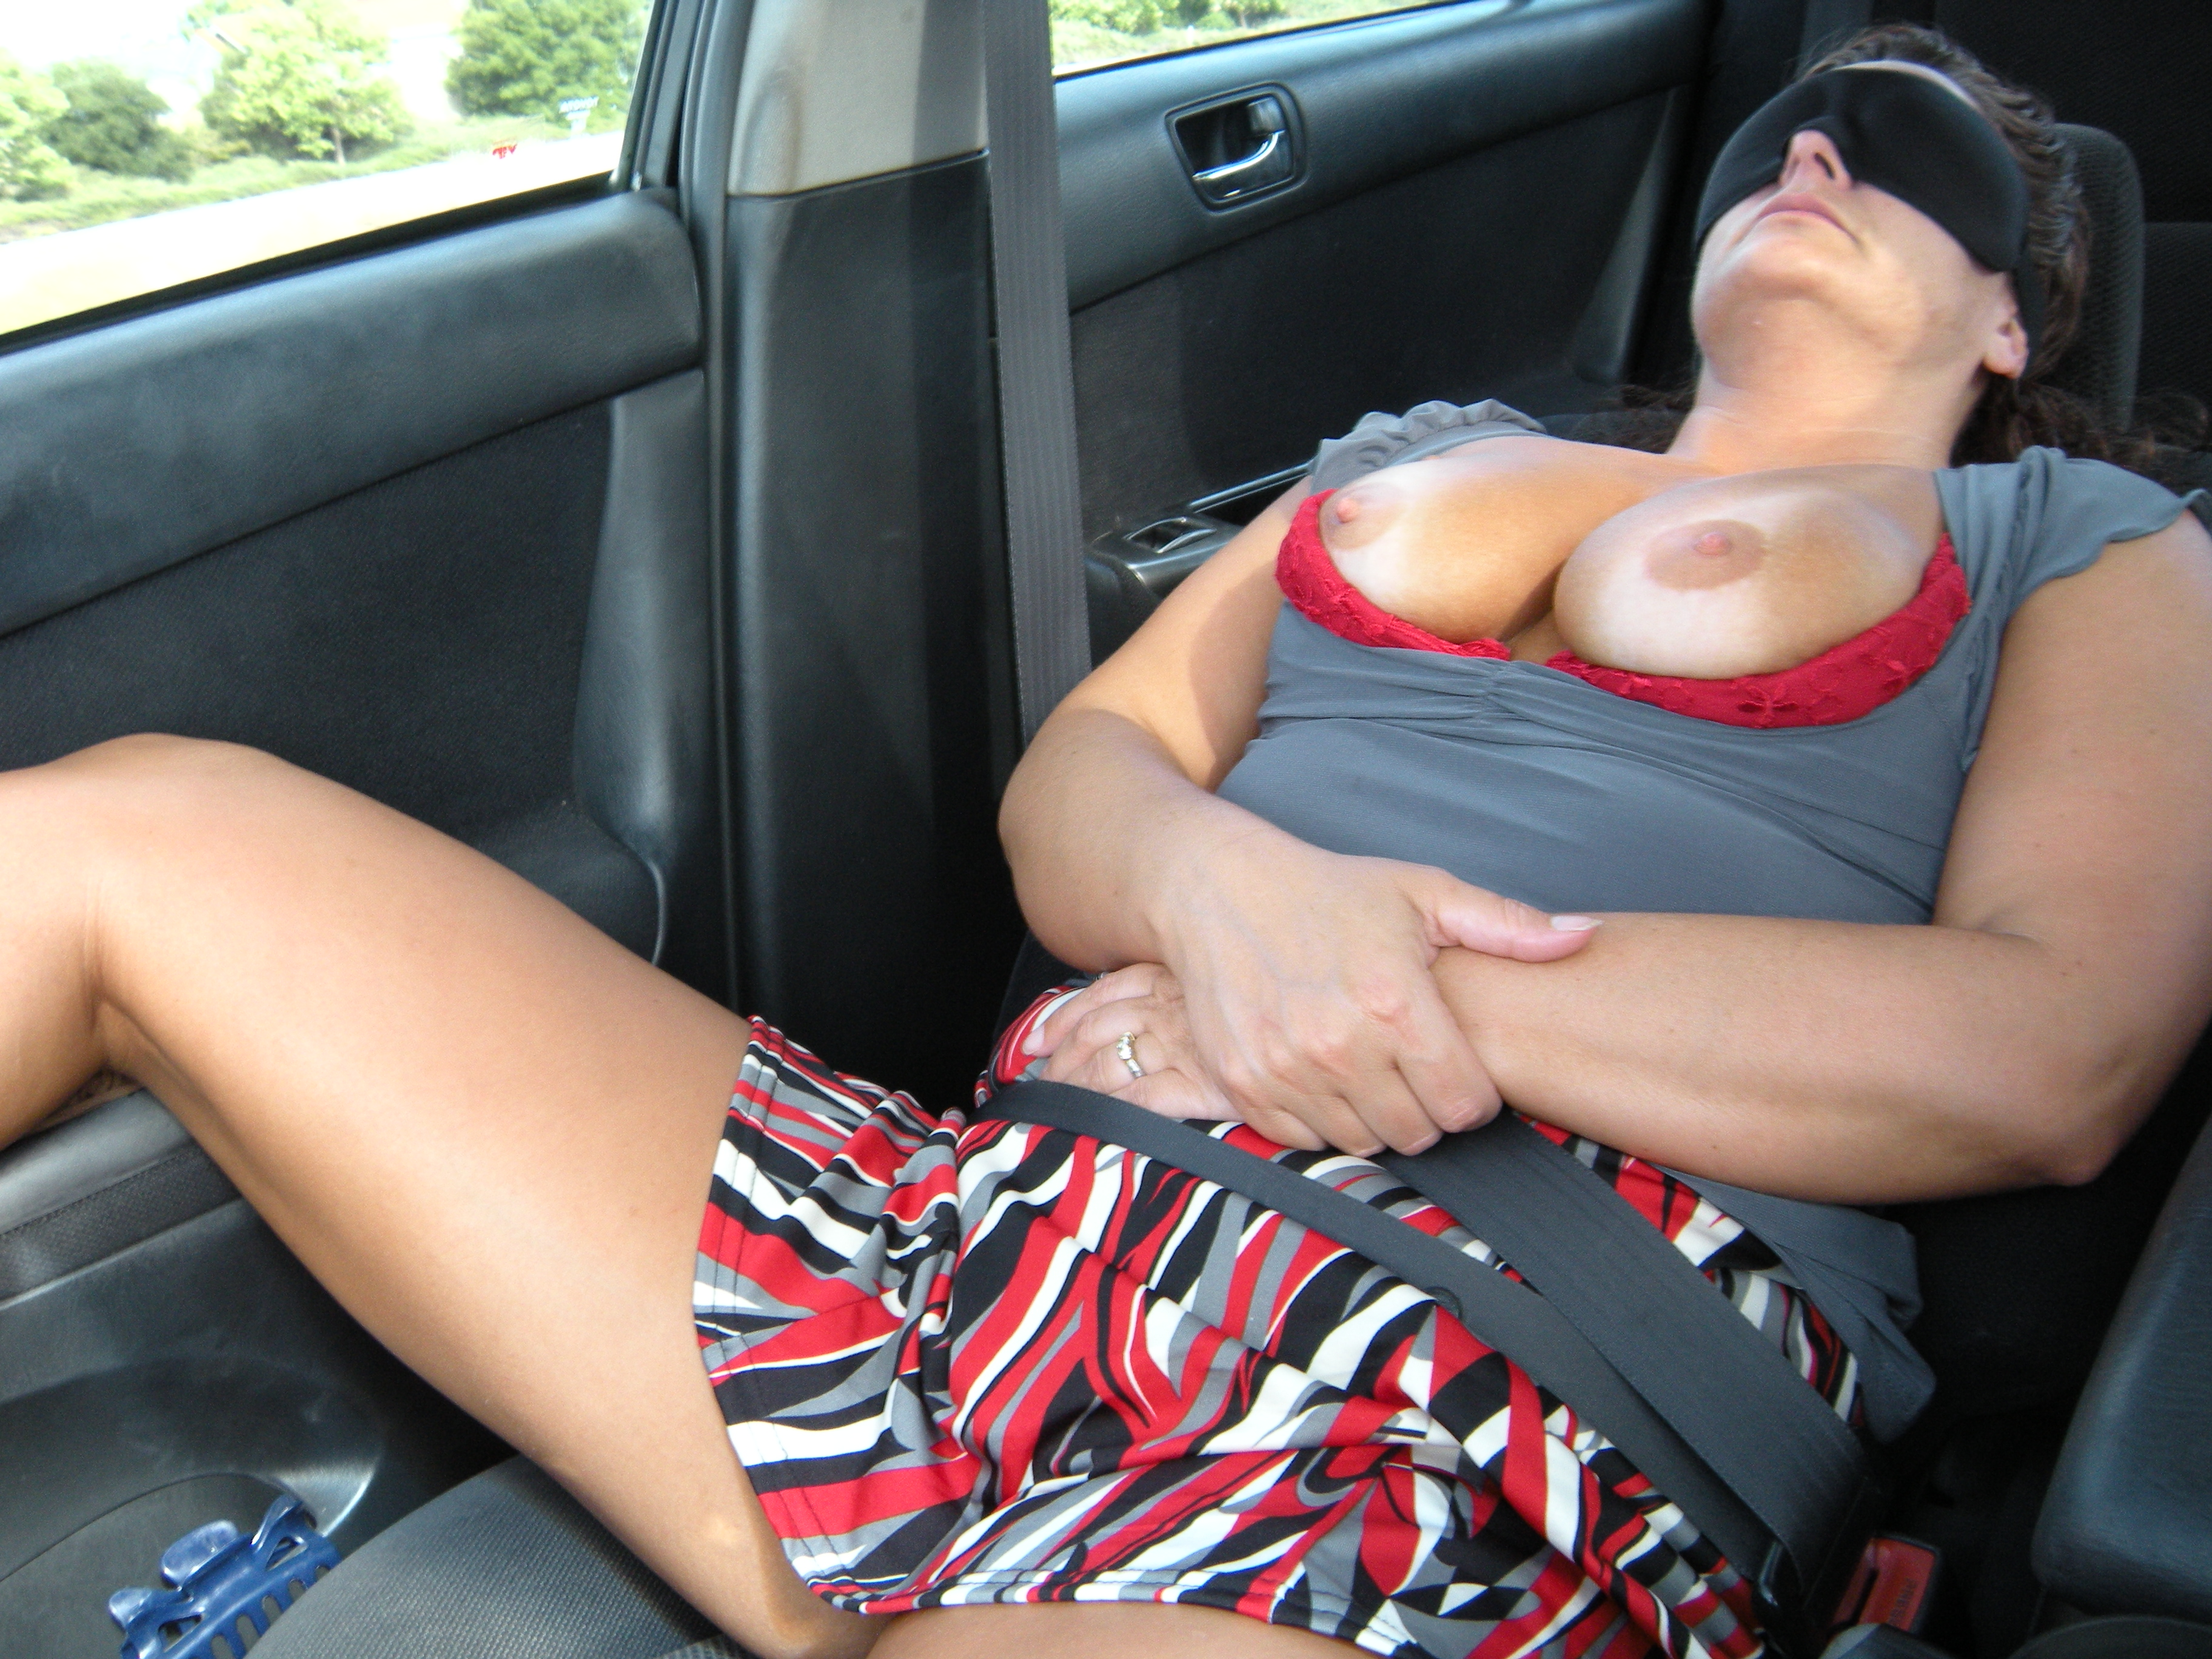 Wife nude in car pictures — 6